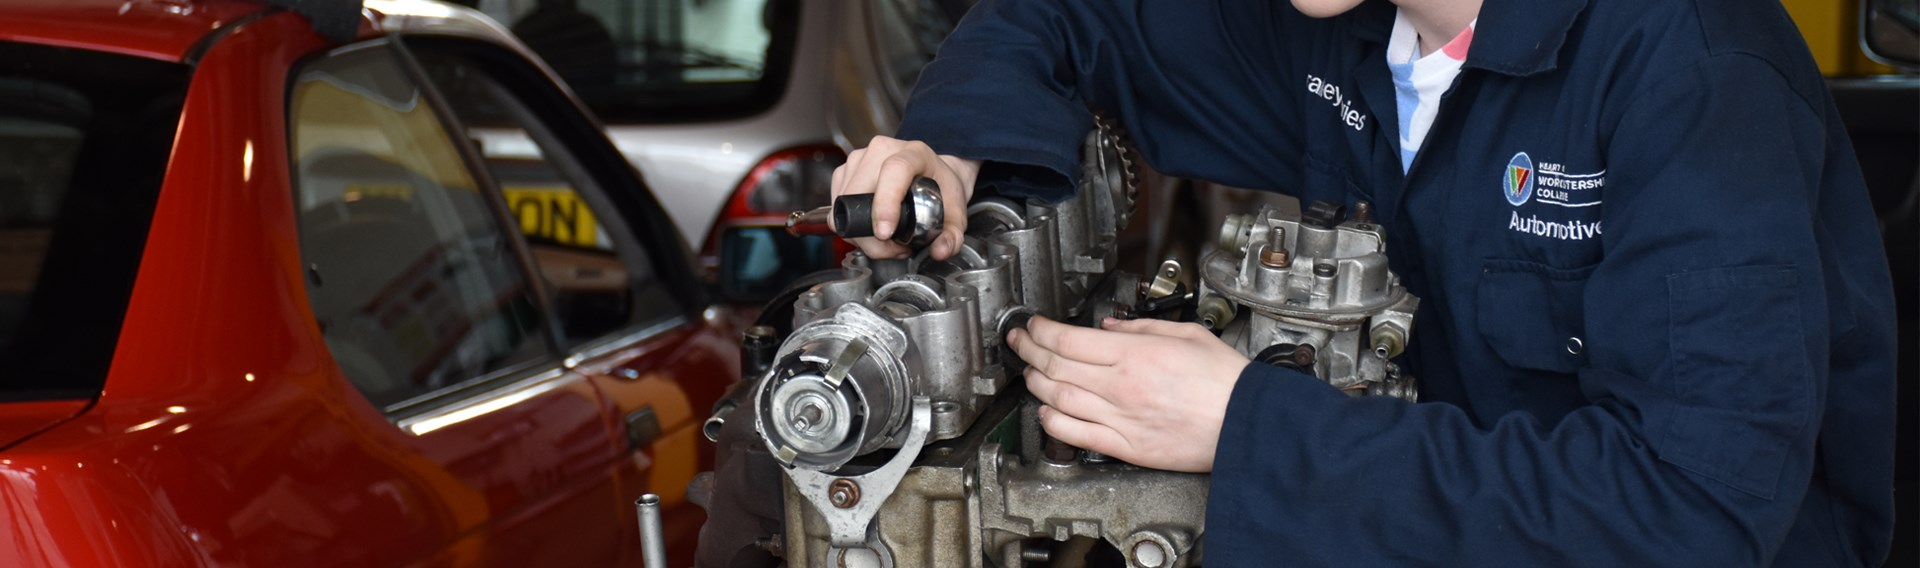 Automotive Technical Training